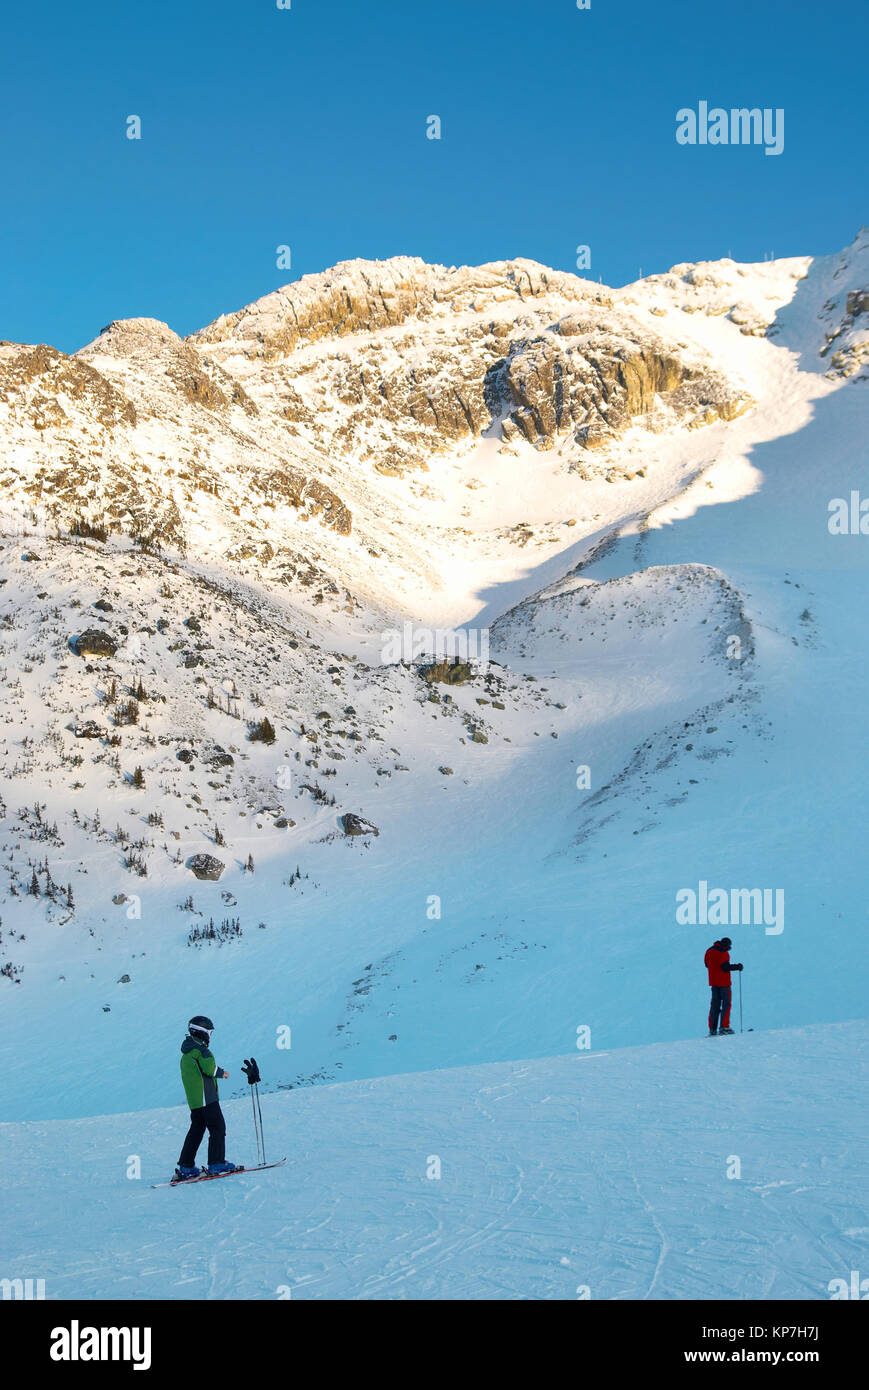 Skier on the mountain slope - Stock Image